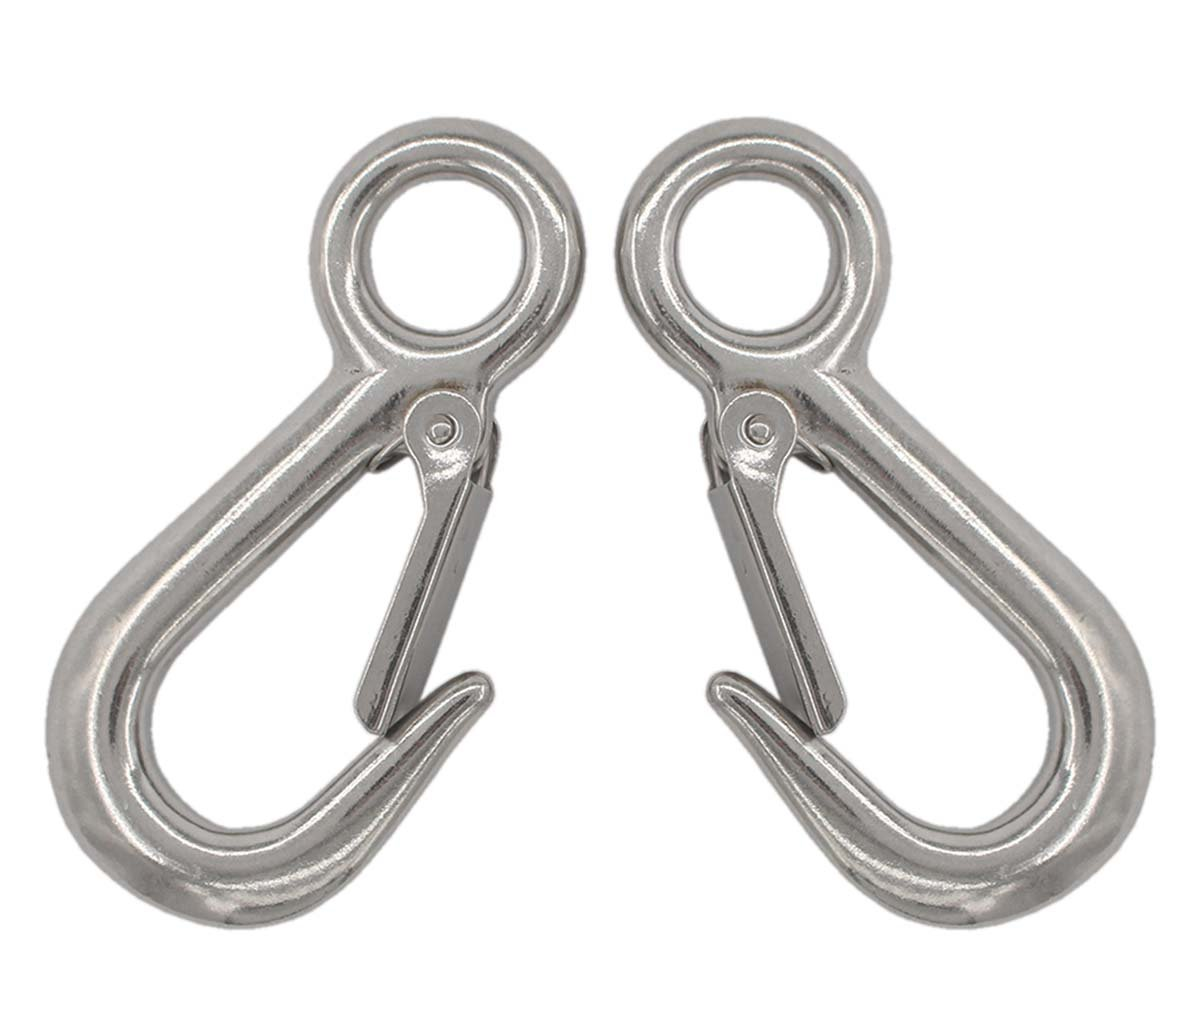 2pcs 316 Stainless Steel Fast Eye Safety Snap Hooks, 4'' Long, 3/4'' Eyelet Compatible with Fasteners & Hardware